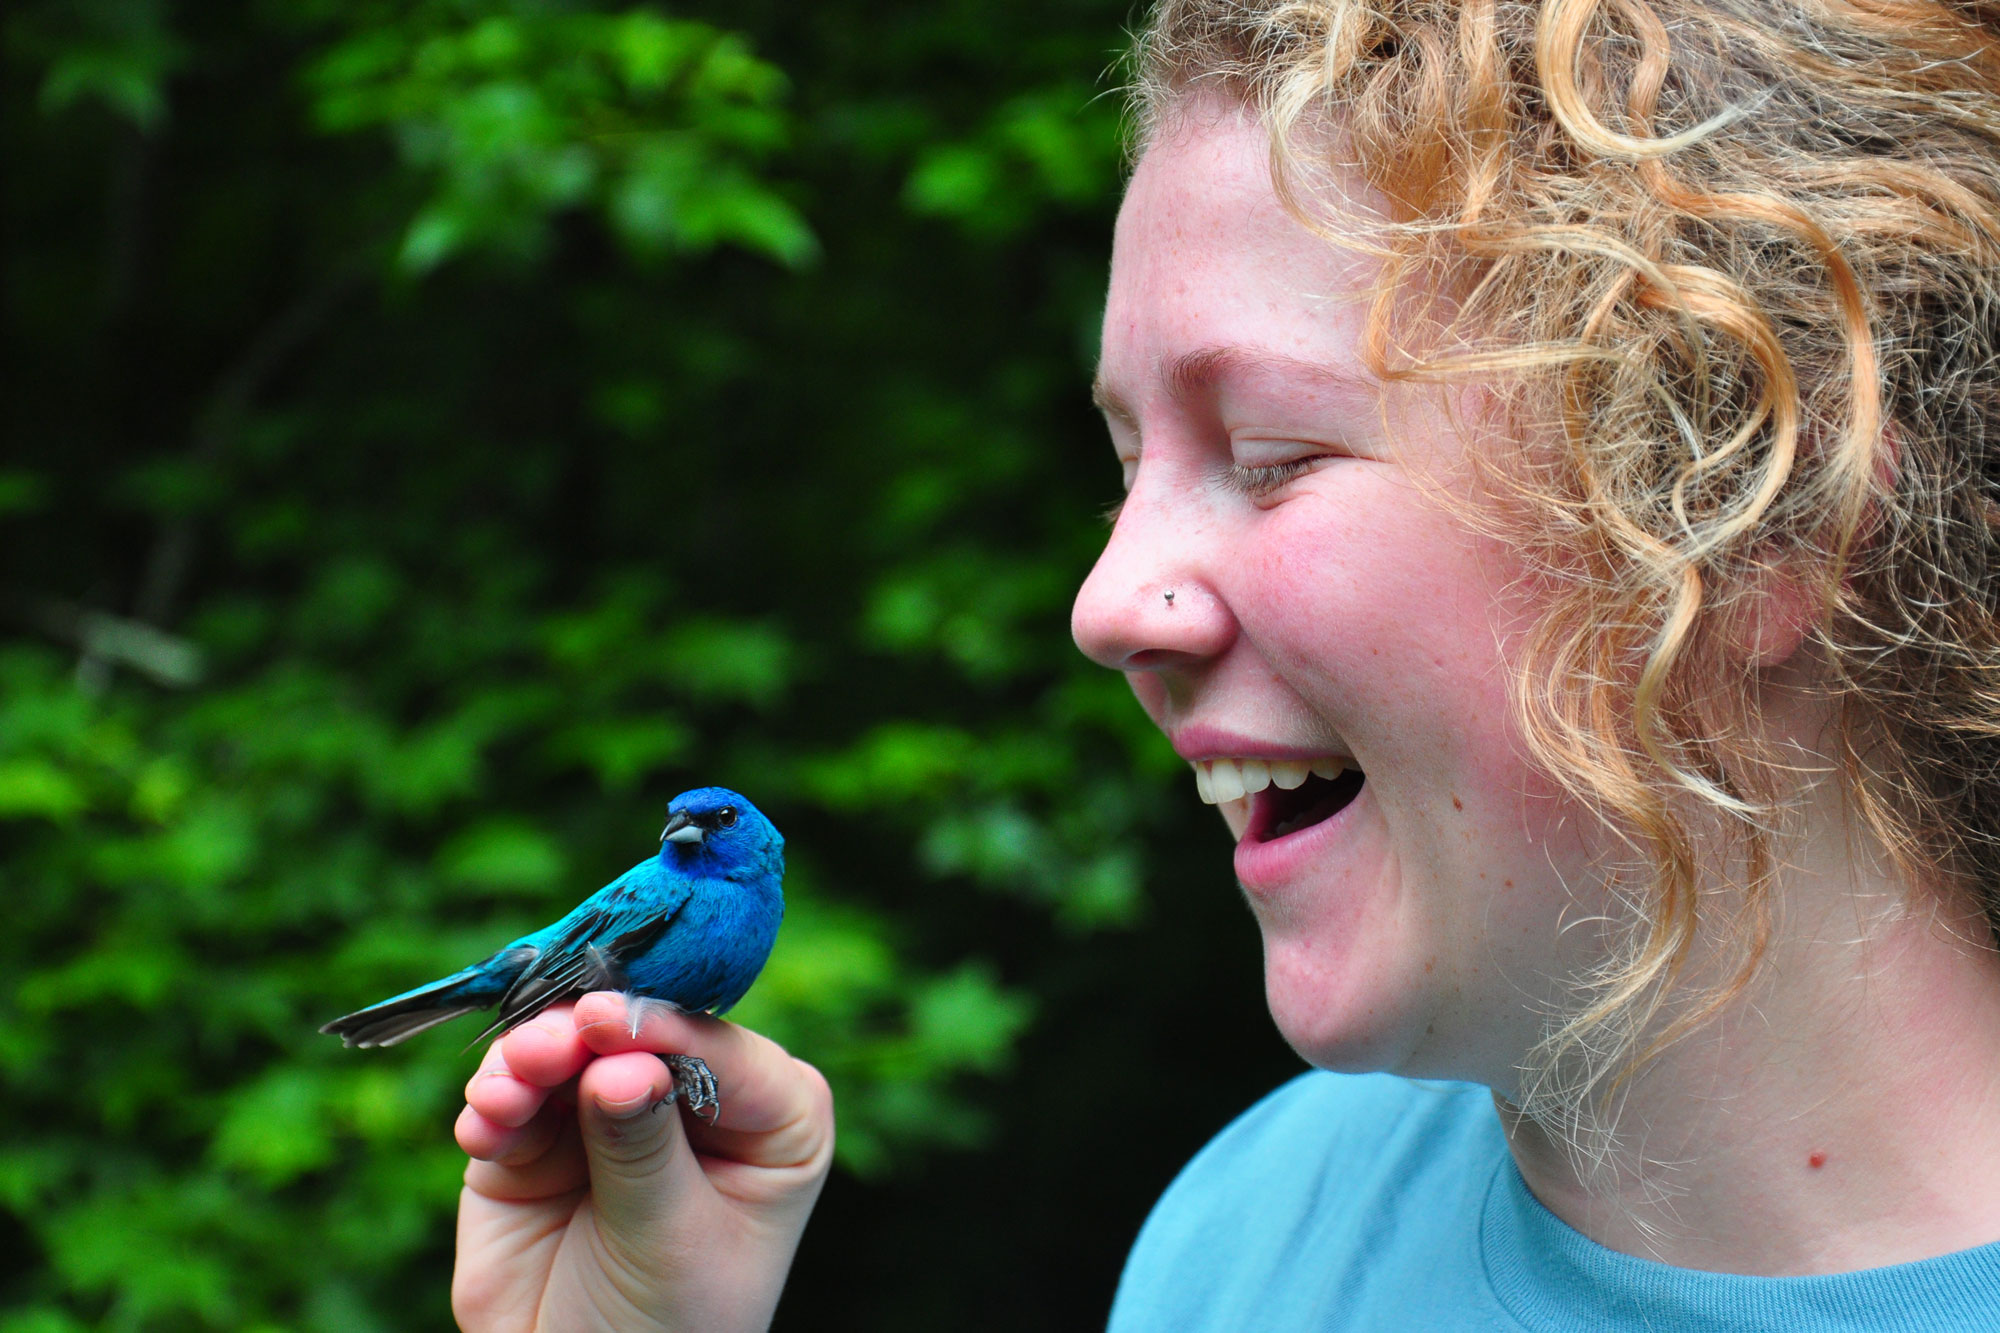 A female holds a bird during bird banding at Tremont Institute